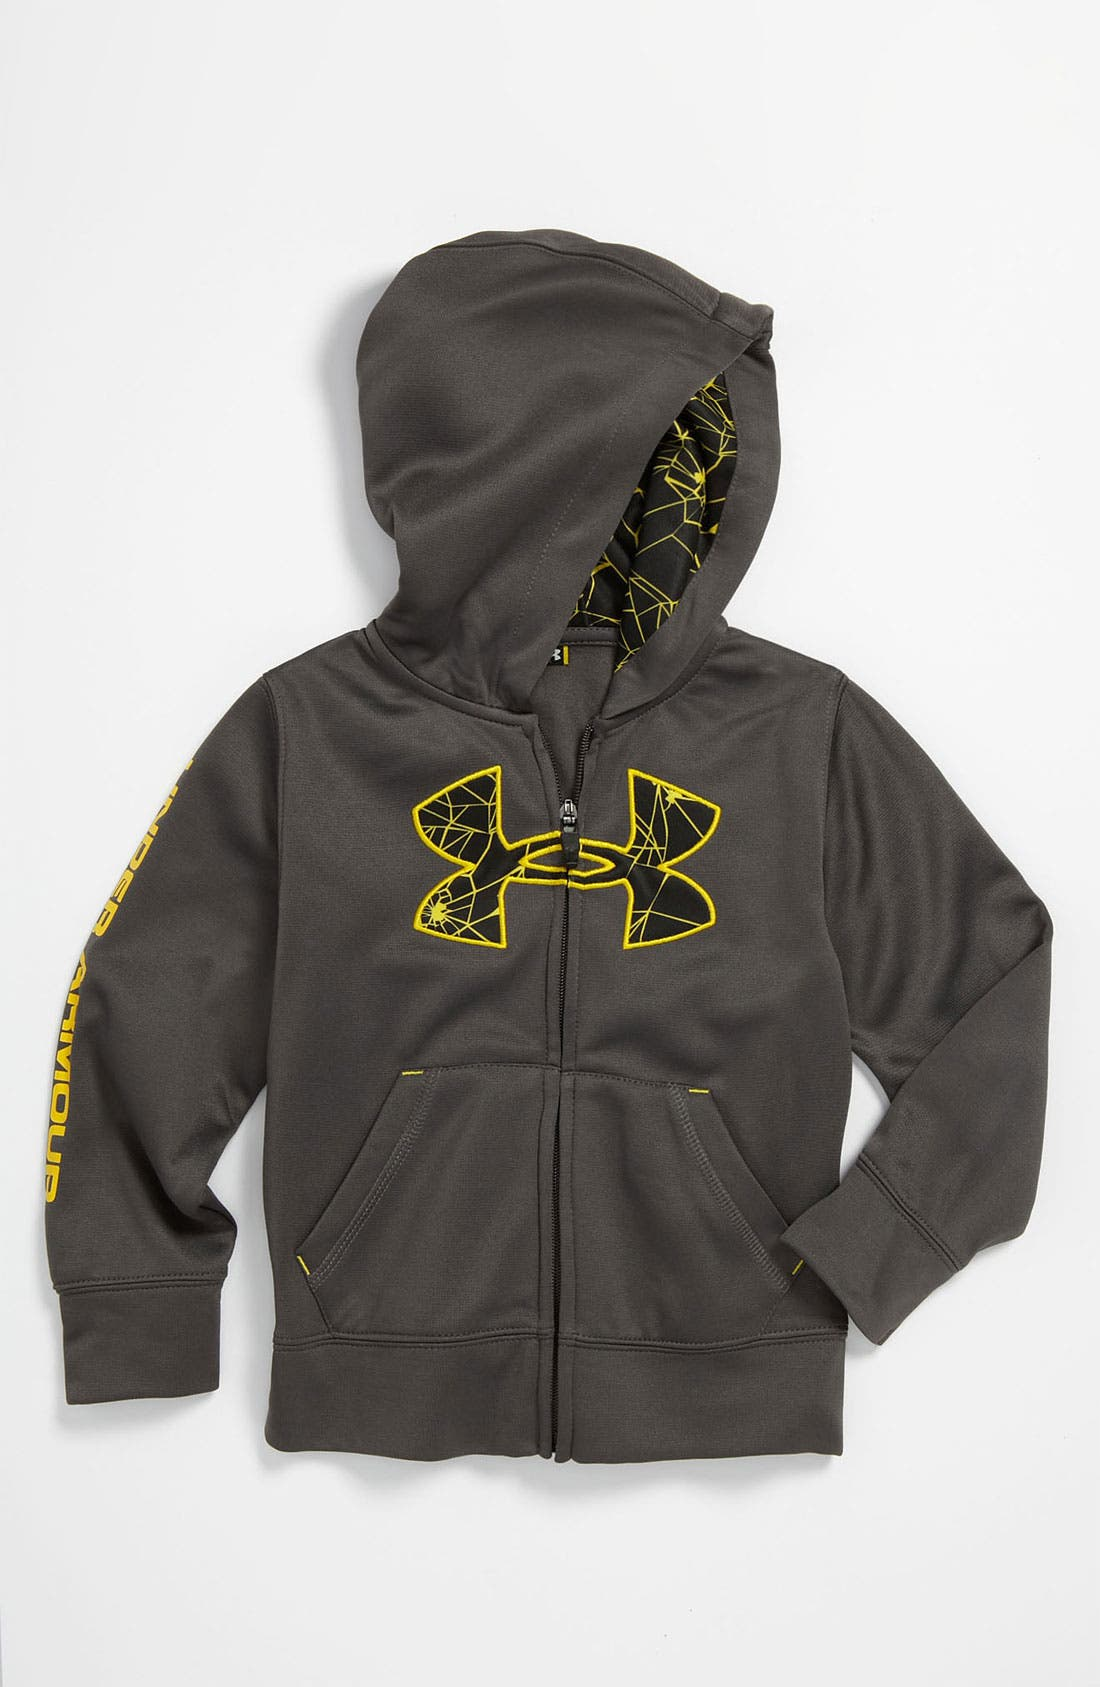 Alternate Image 1 Selected - Under Armour 'Web' Hoodie (Toddler)